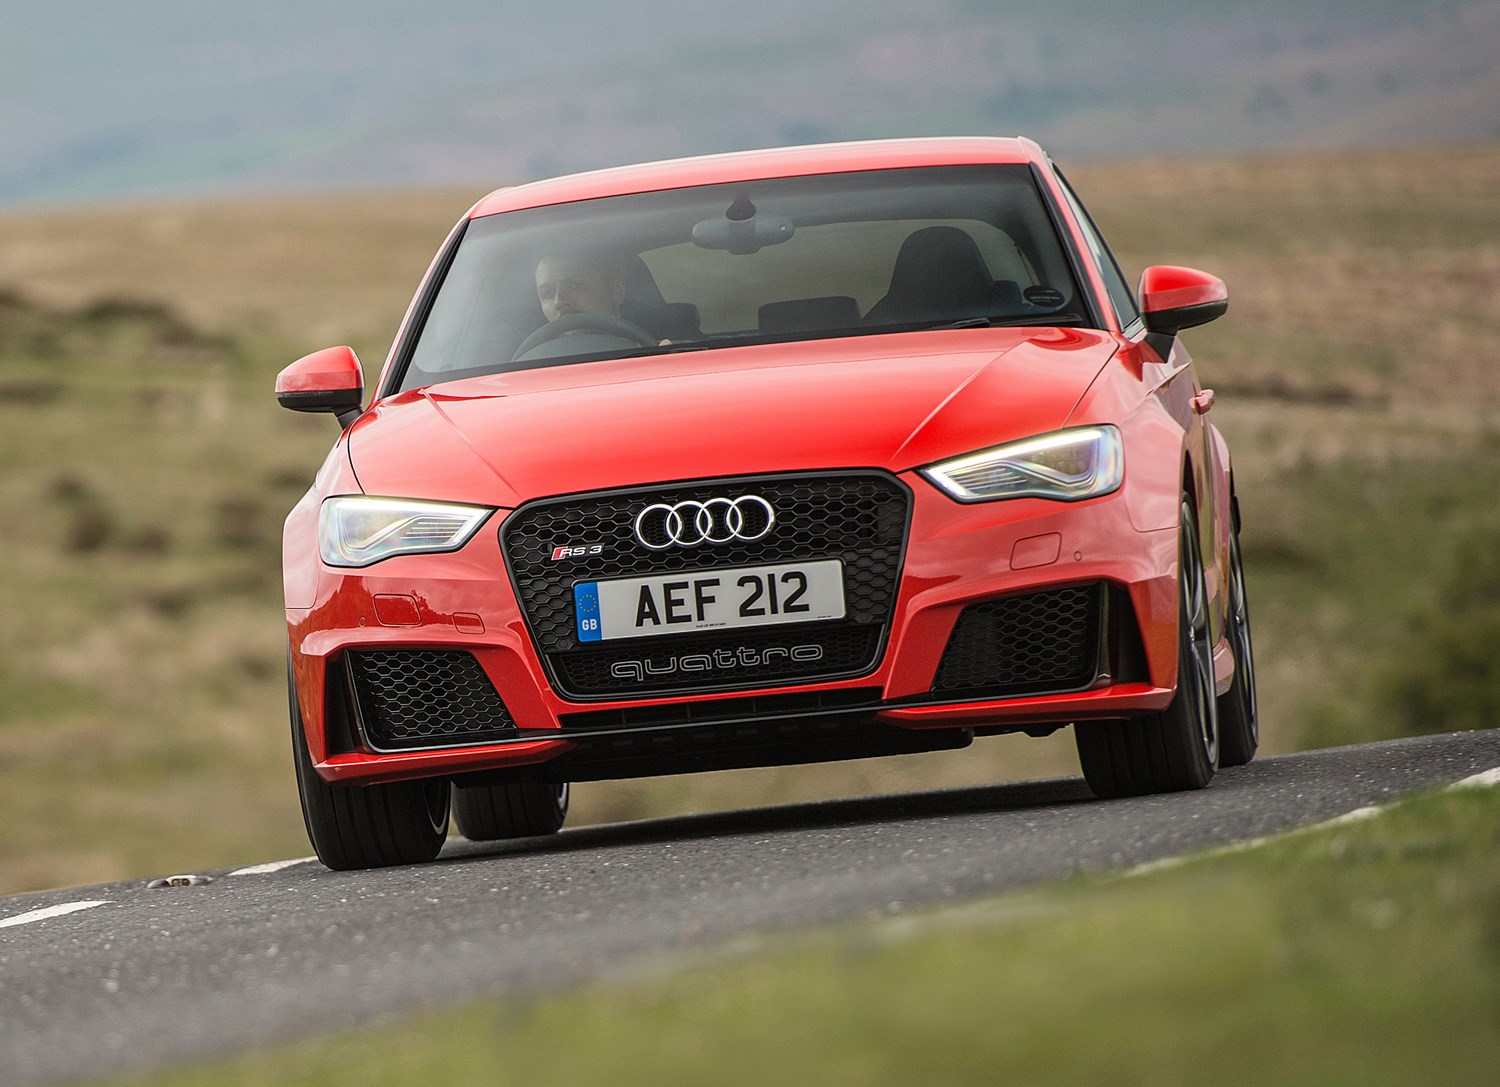 Used Audi A3 RS3 Sportback (2015 - 2016) Review | Parkers